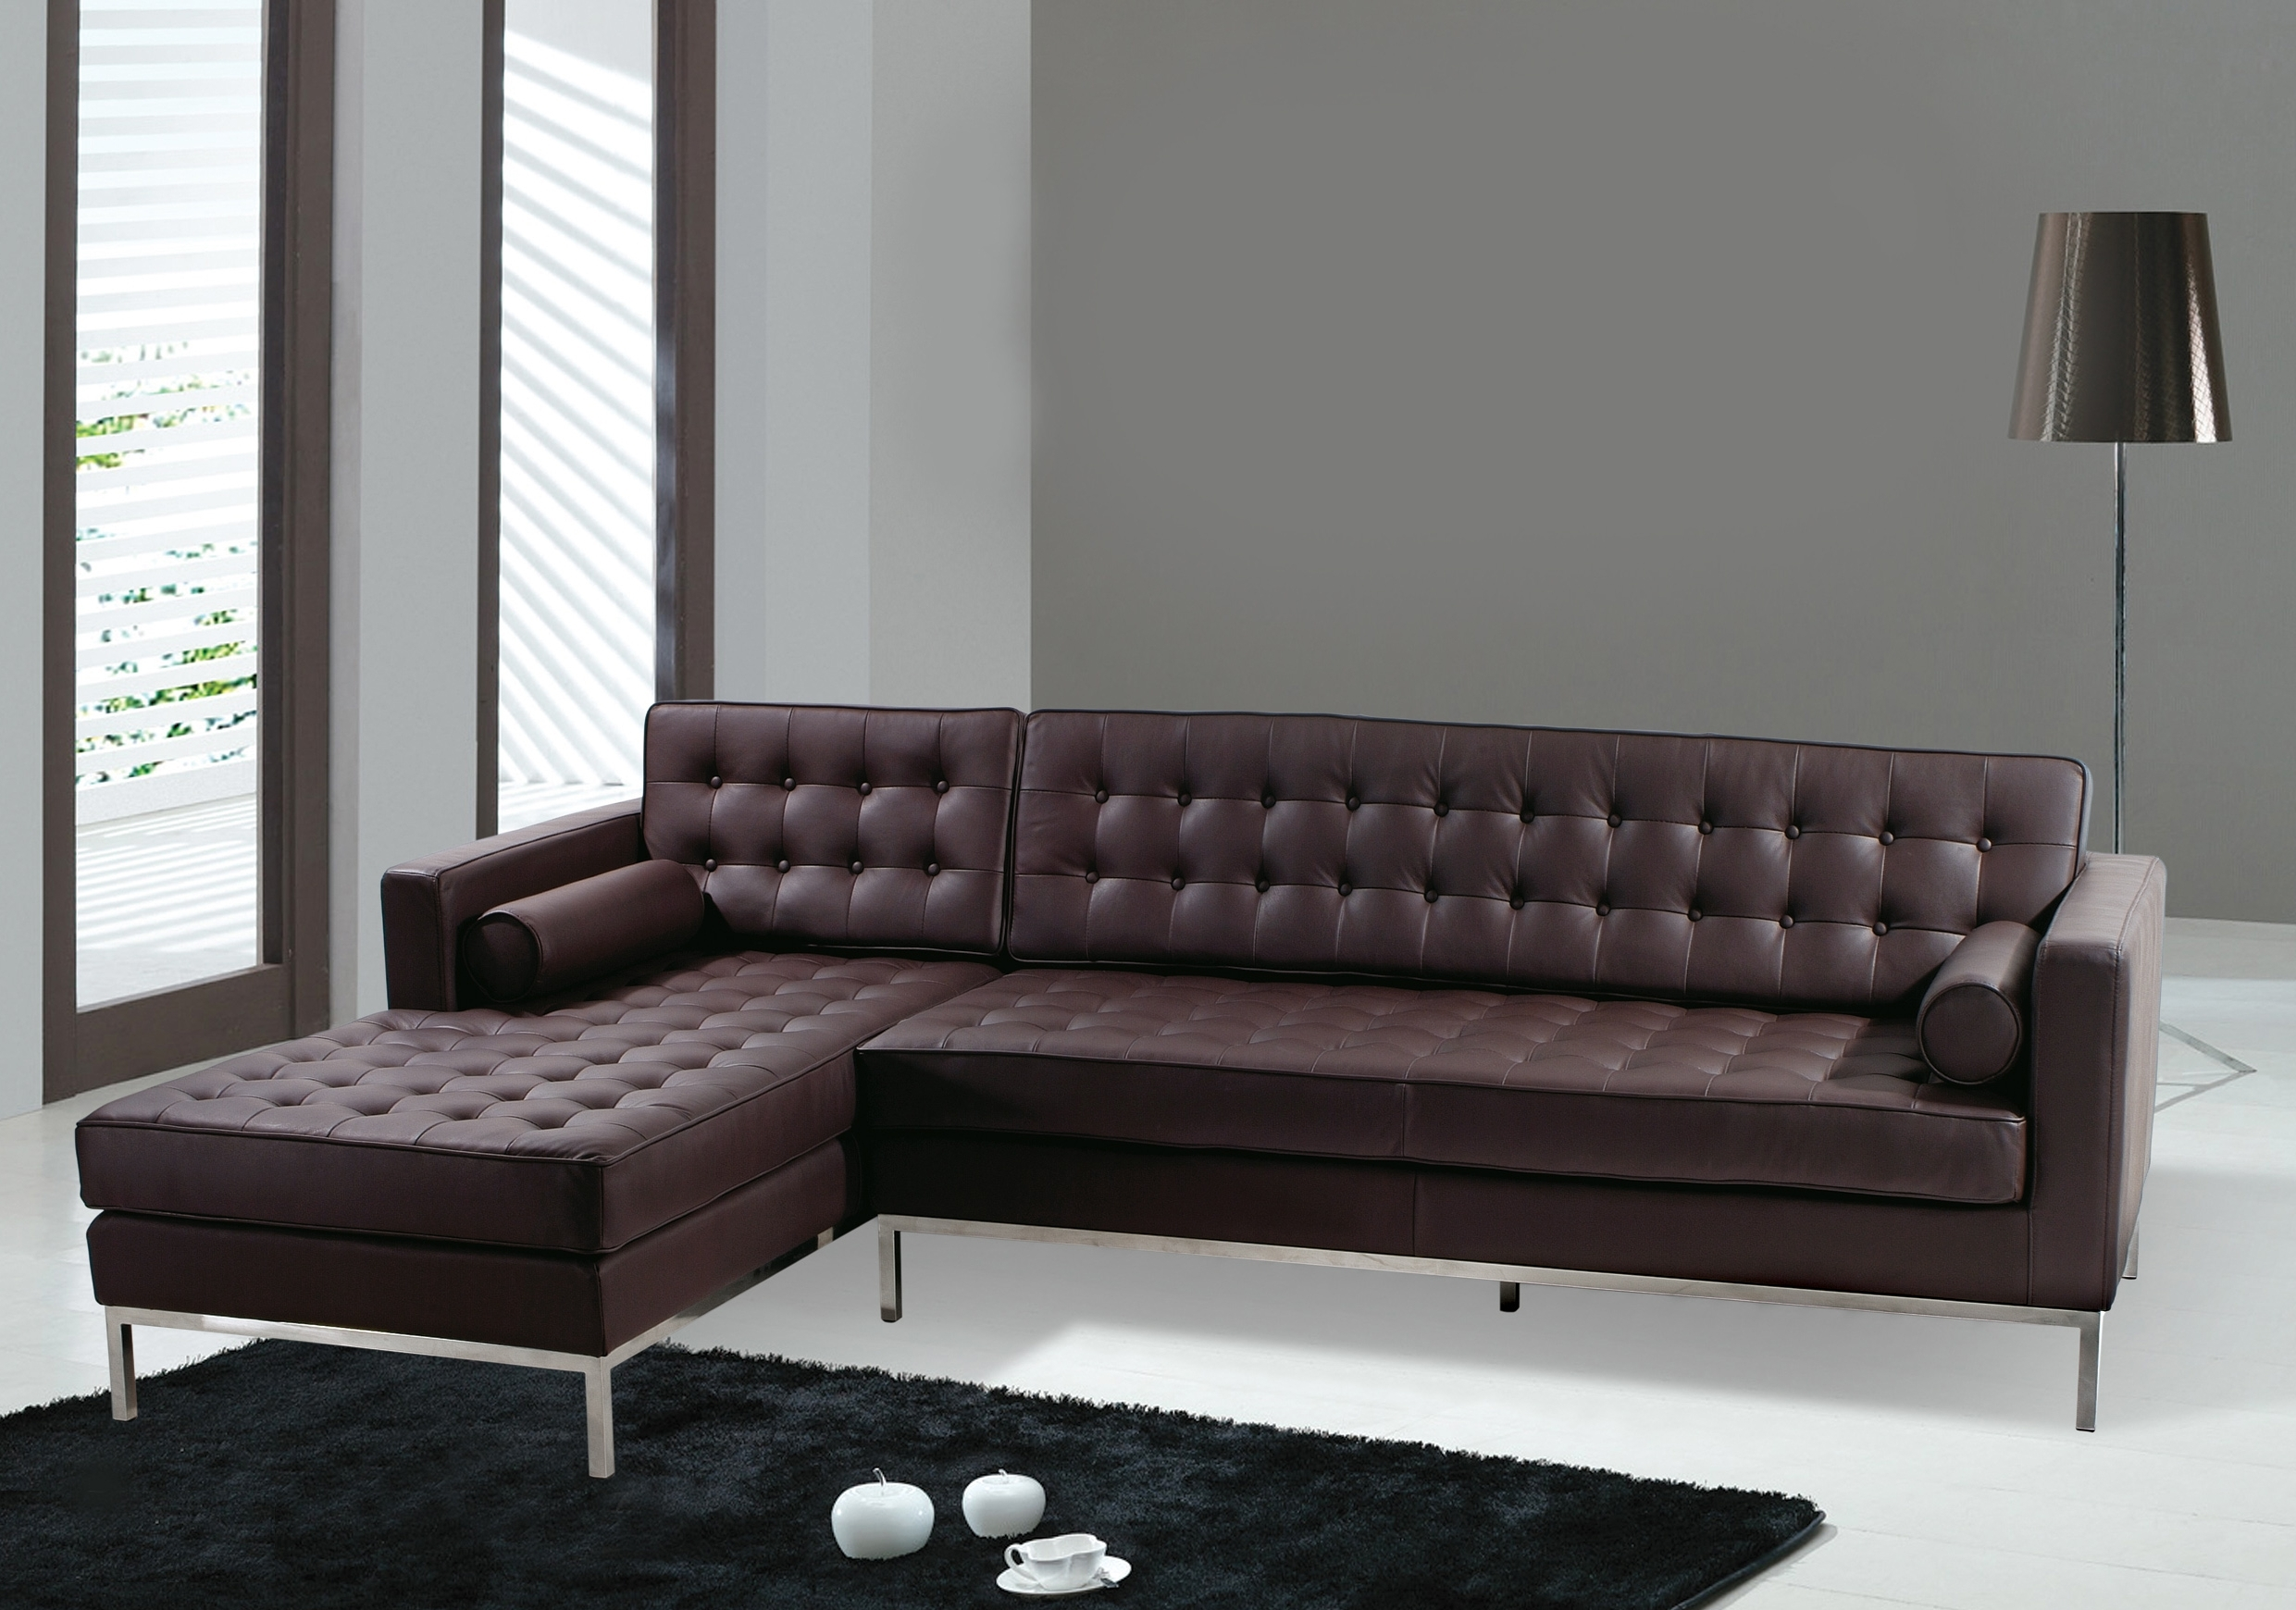 Cheapest Sectional Couches Within Clearance Sectional Sofas (View 2 of 20)